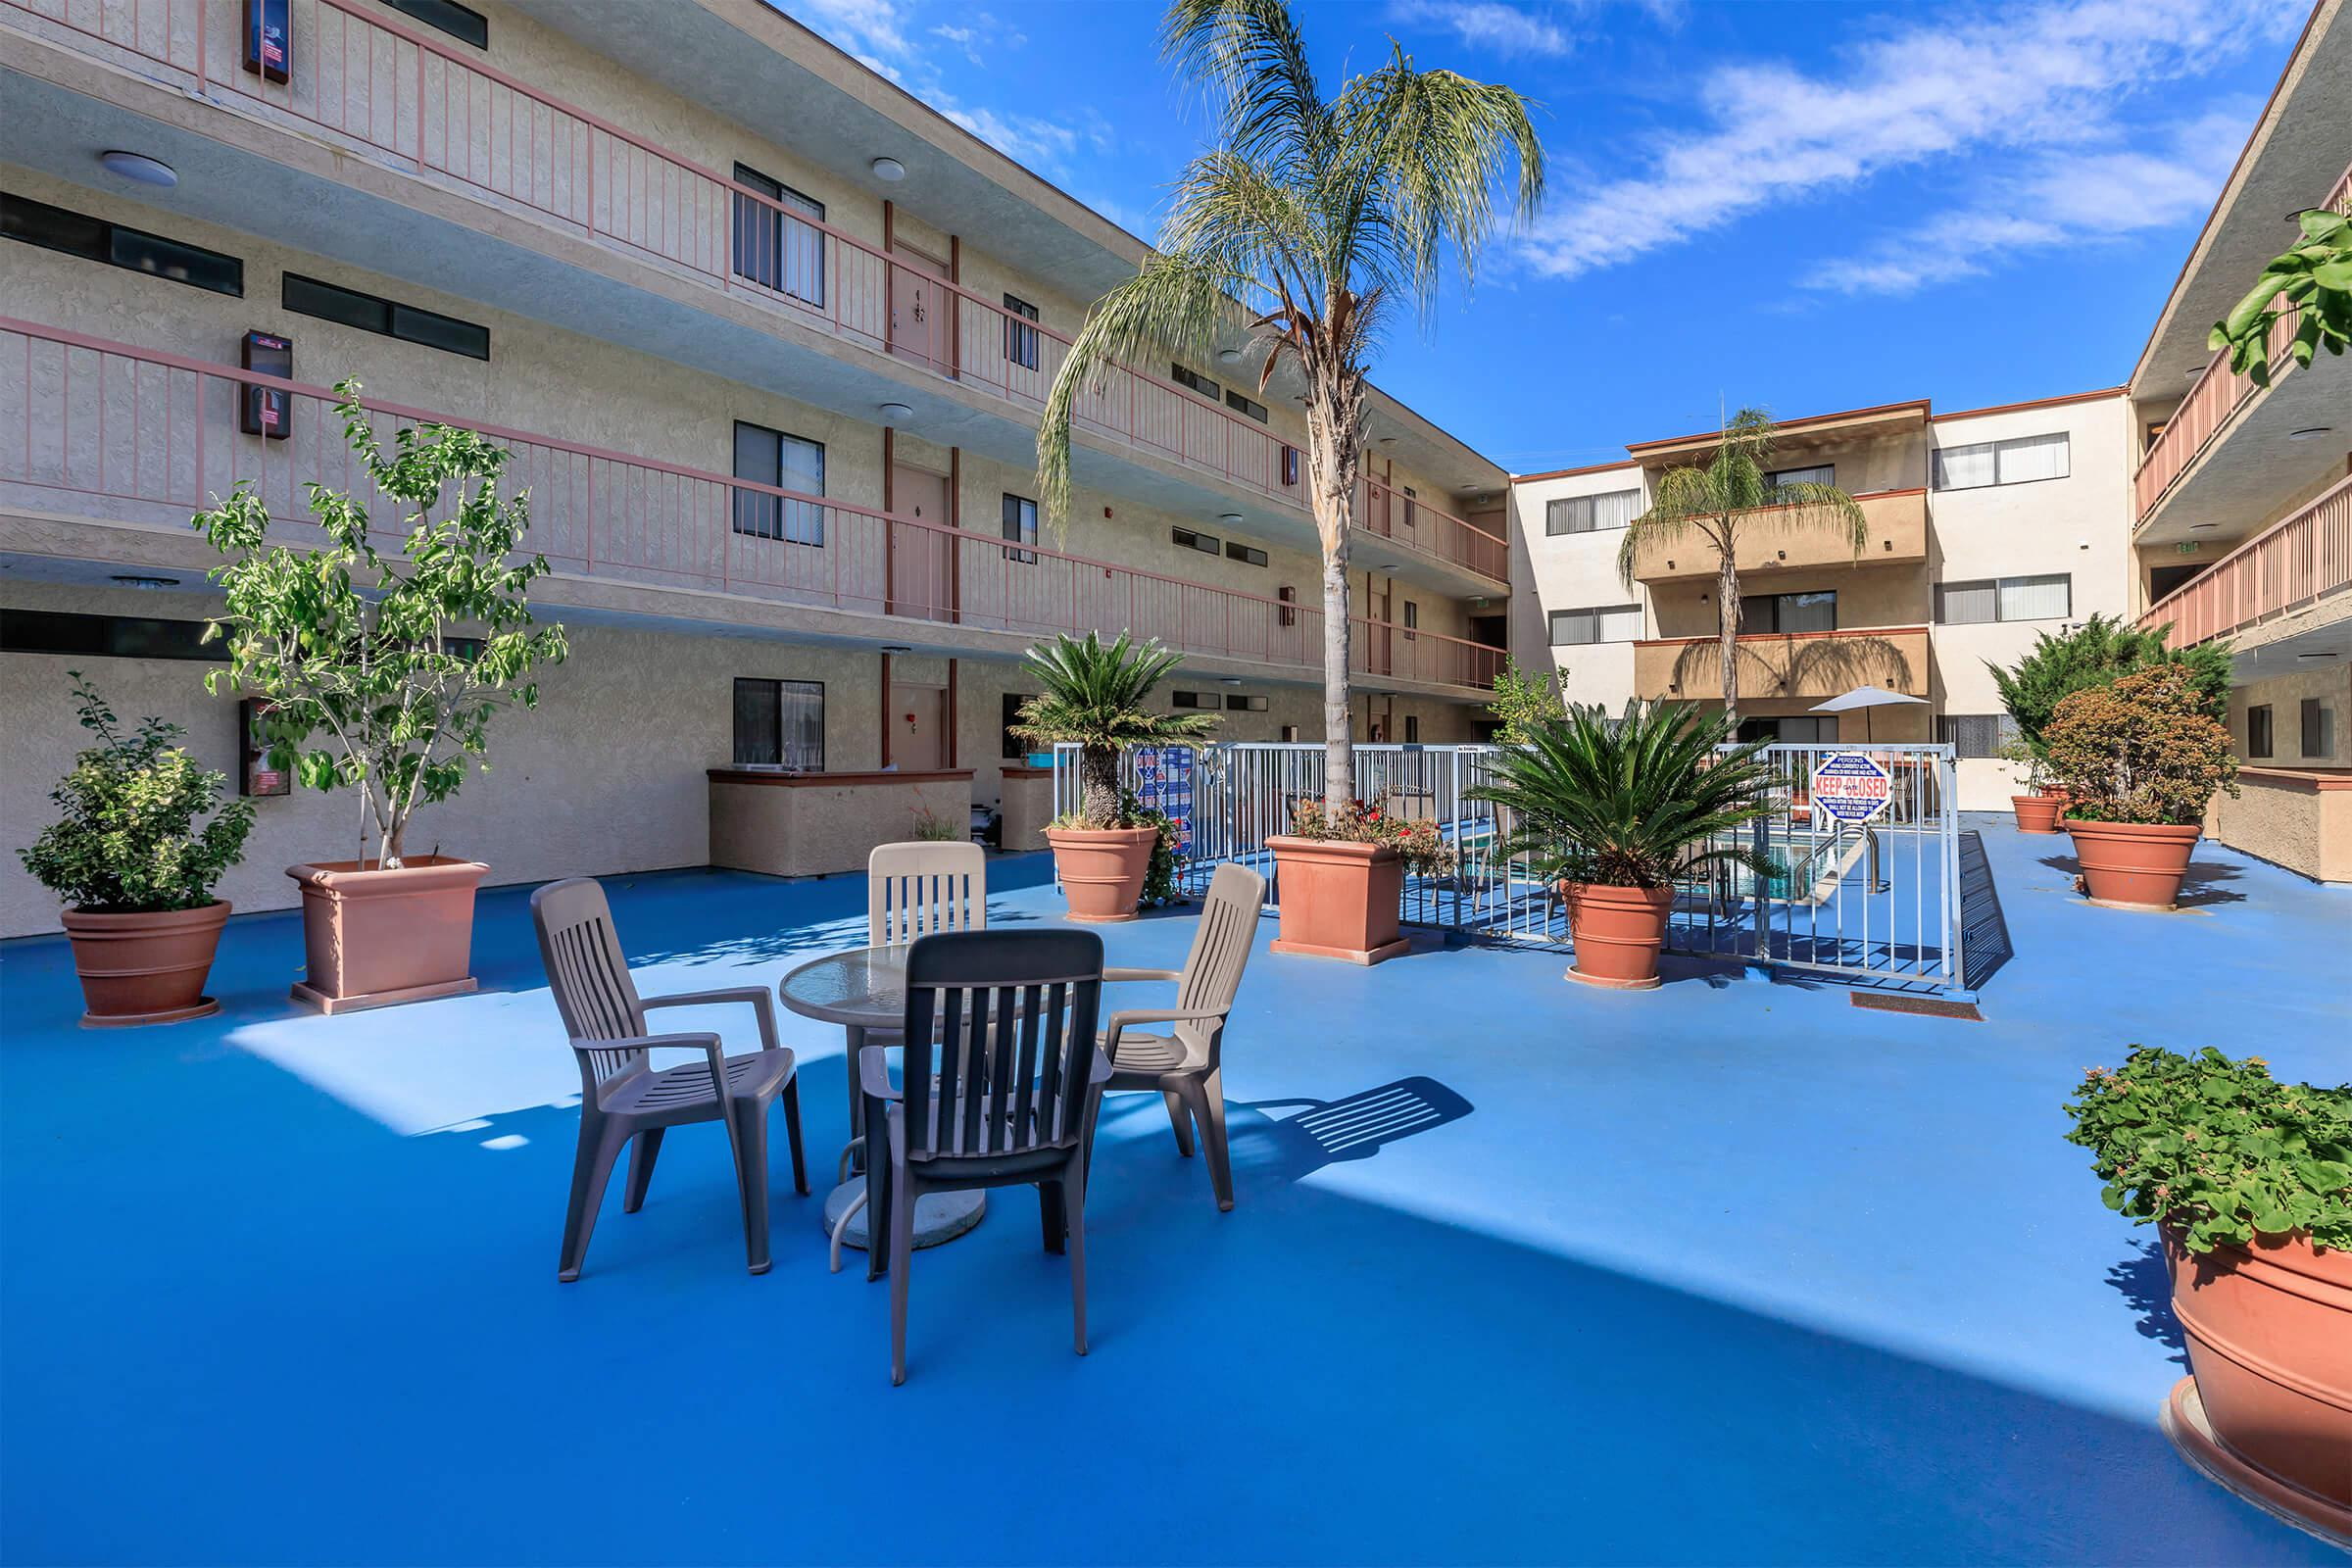 Valleywood Apartments has a picnic area and swimming pool